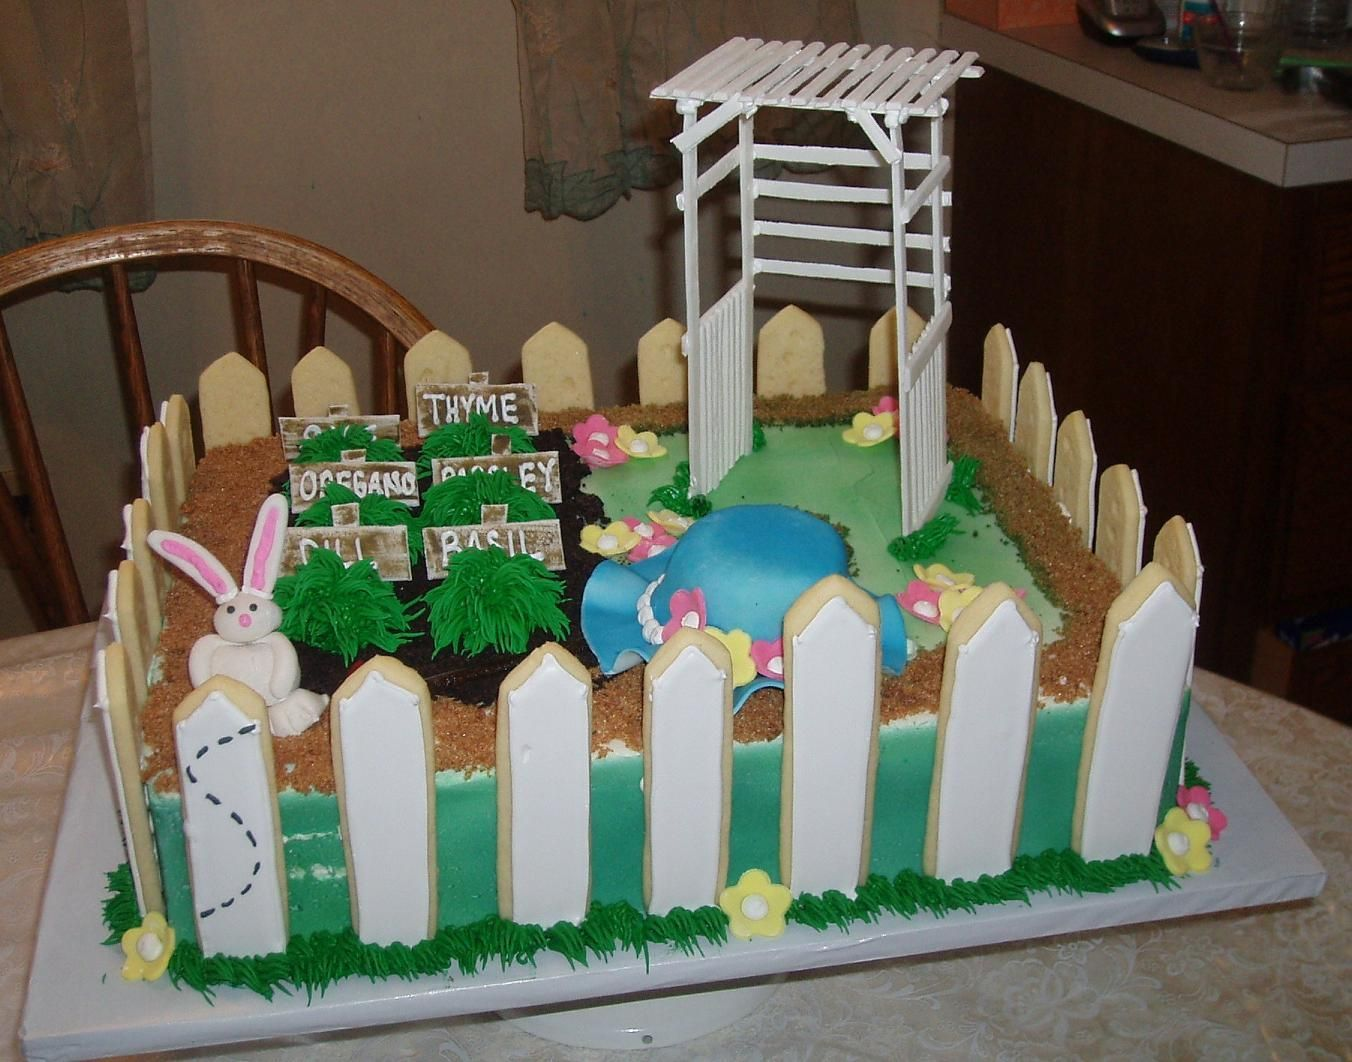 Herb Garden Themed Birthday Cake - Half Sheet cake decorated in an ...